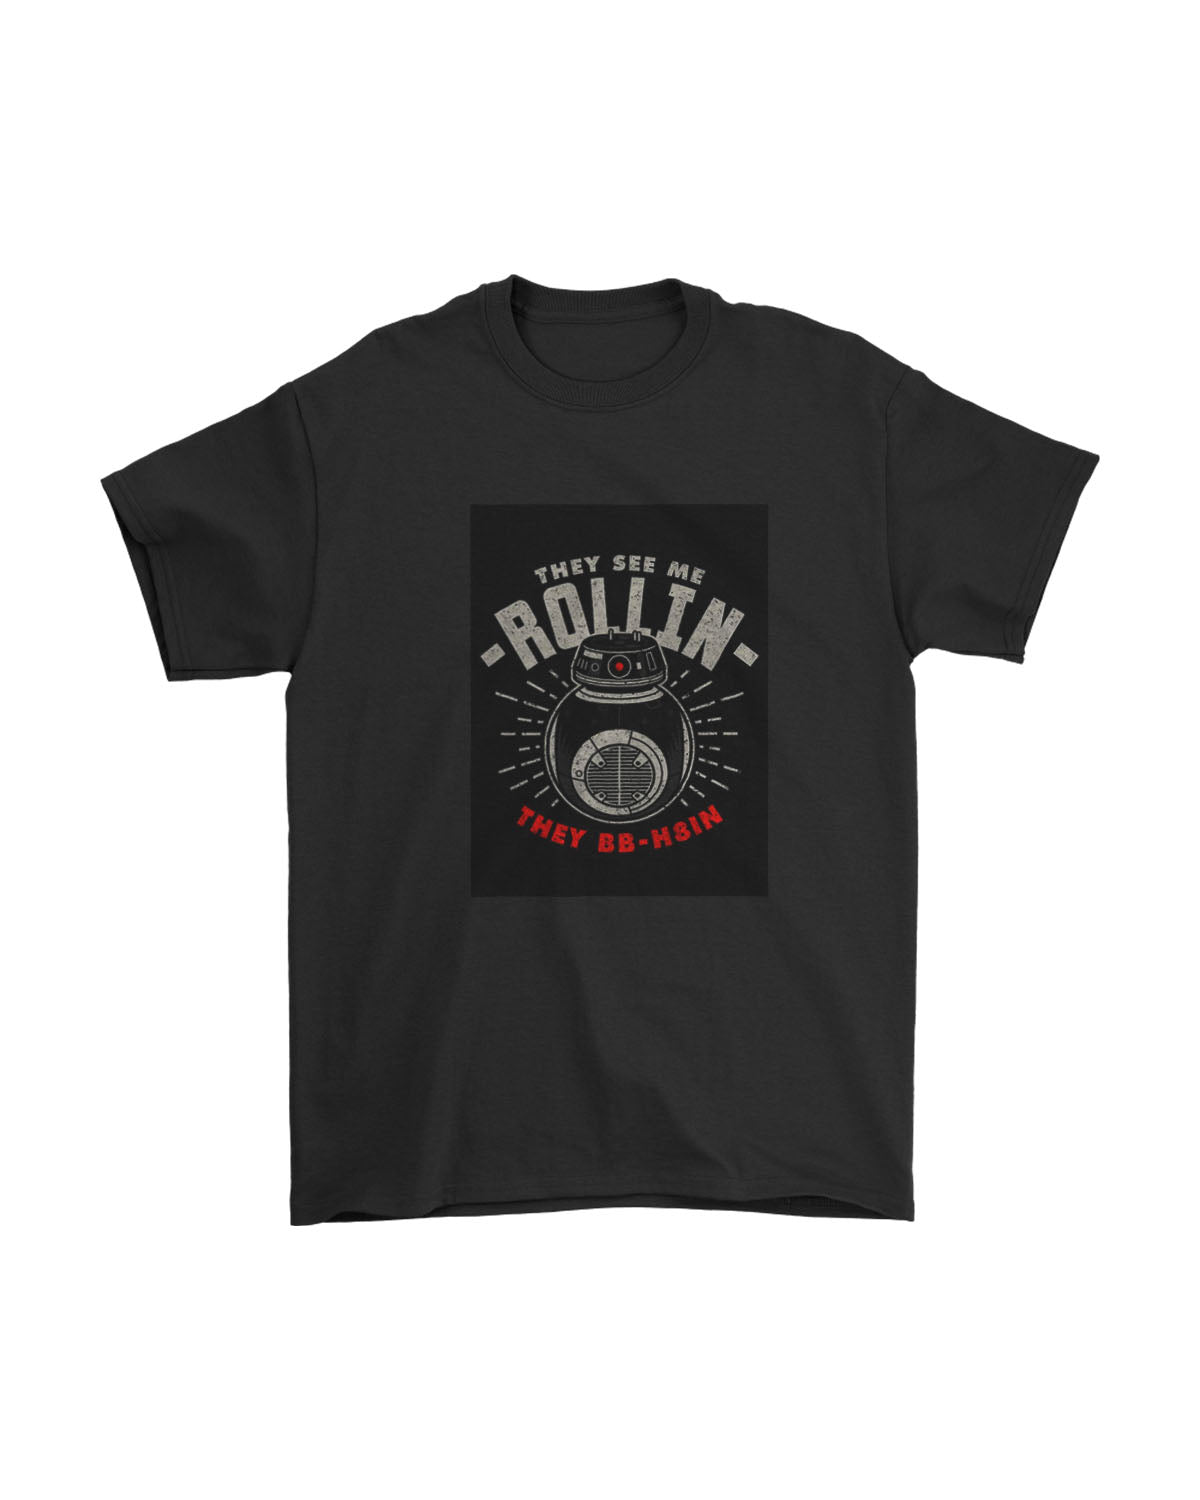 They See Me Rollin They Bbh8in Star Wars Poster Men's T-Shirt